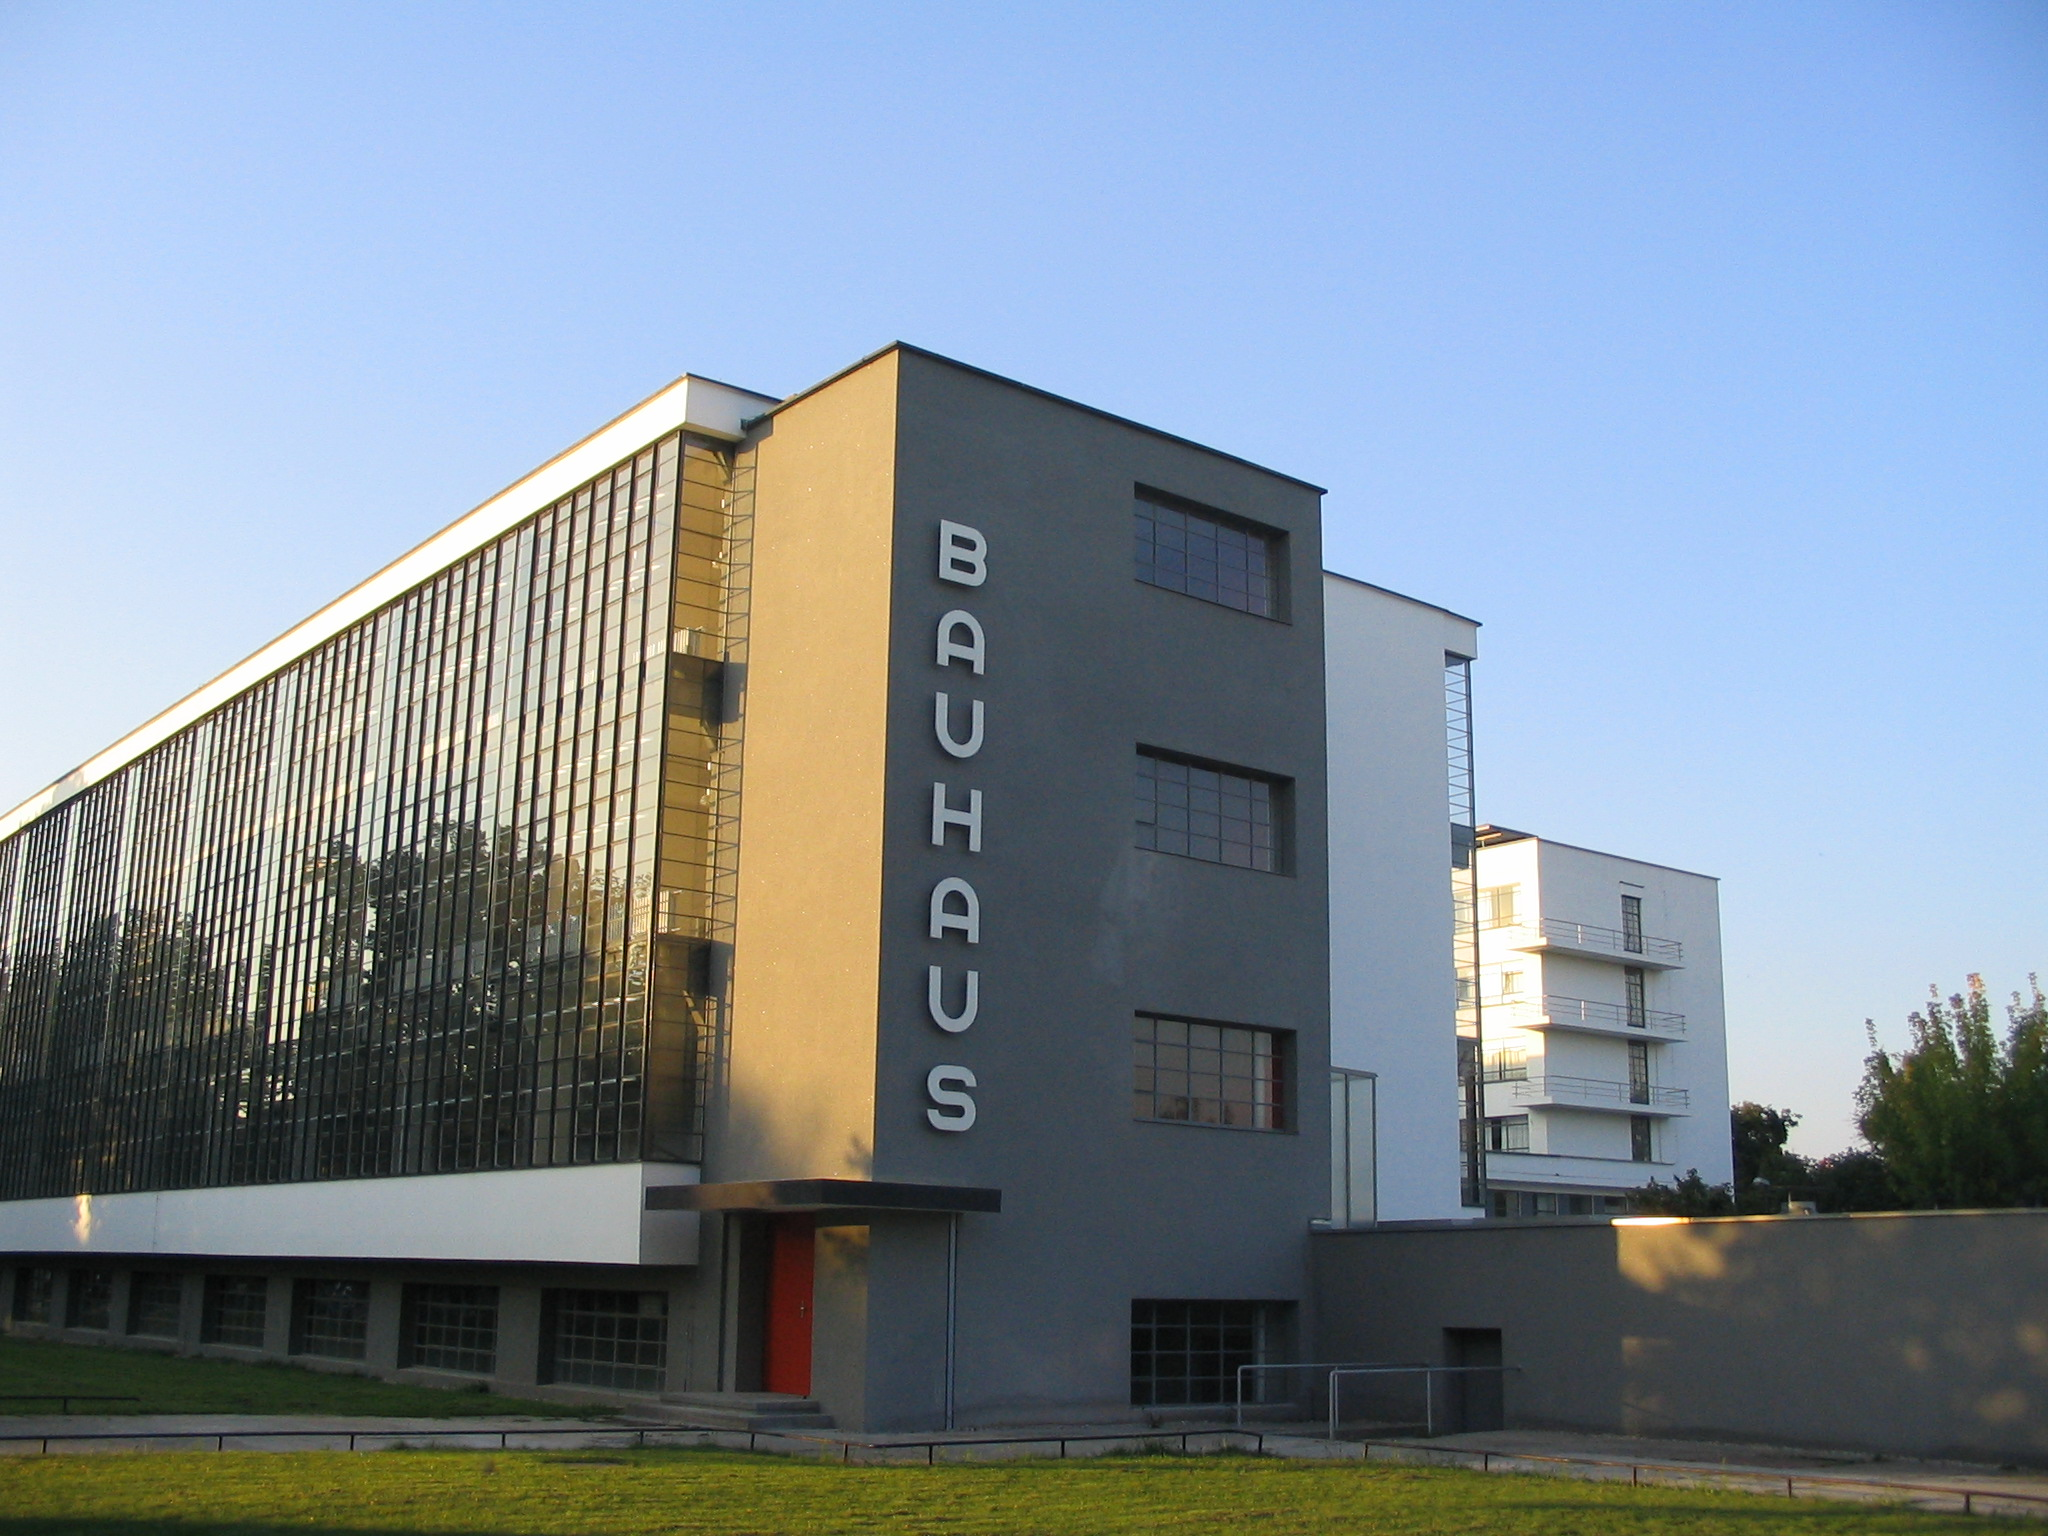 http://upload.wikimedia.org/wikipedia/commons/f/f9/Bauhaus-Dessau_main_building.jpg